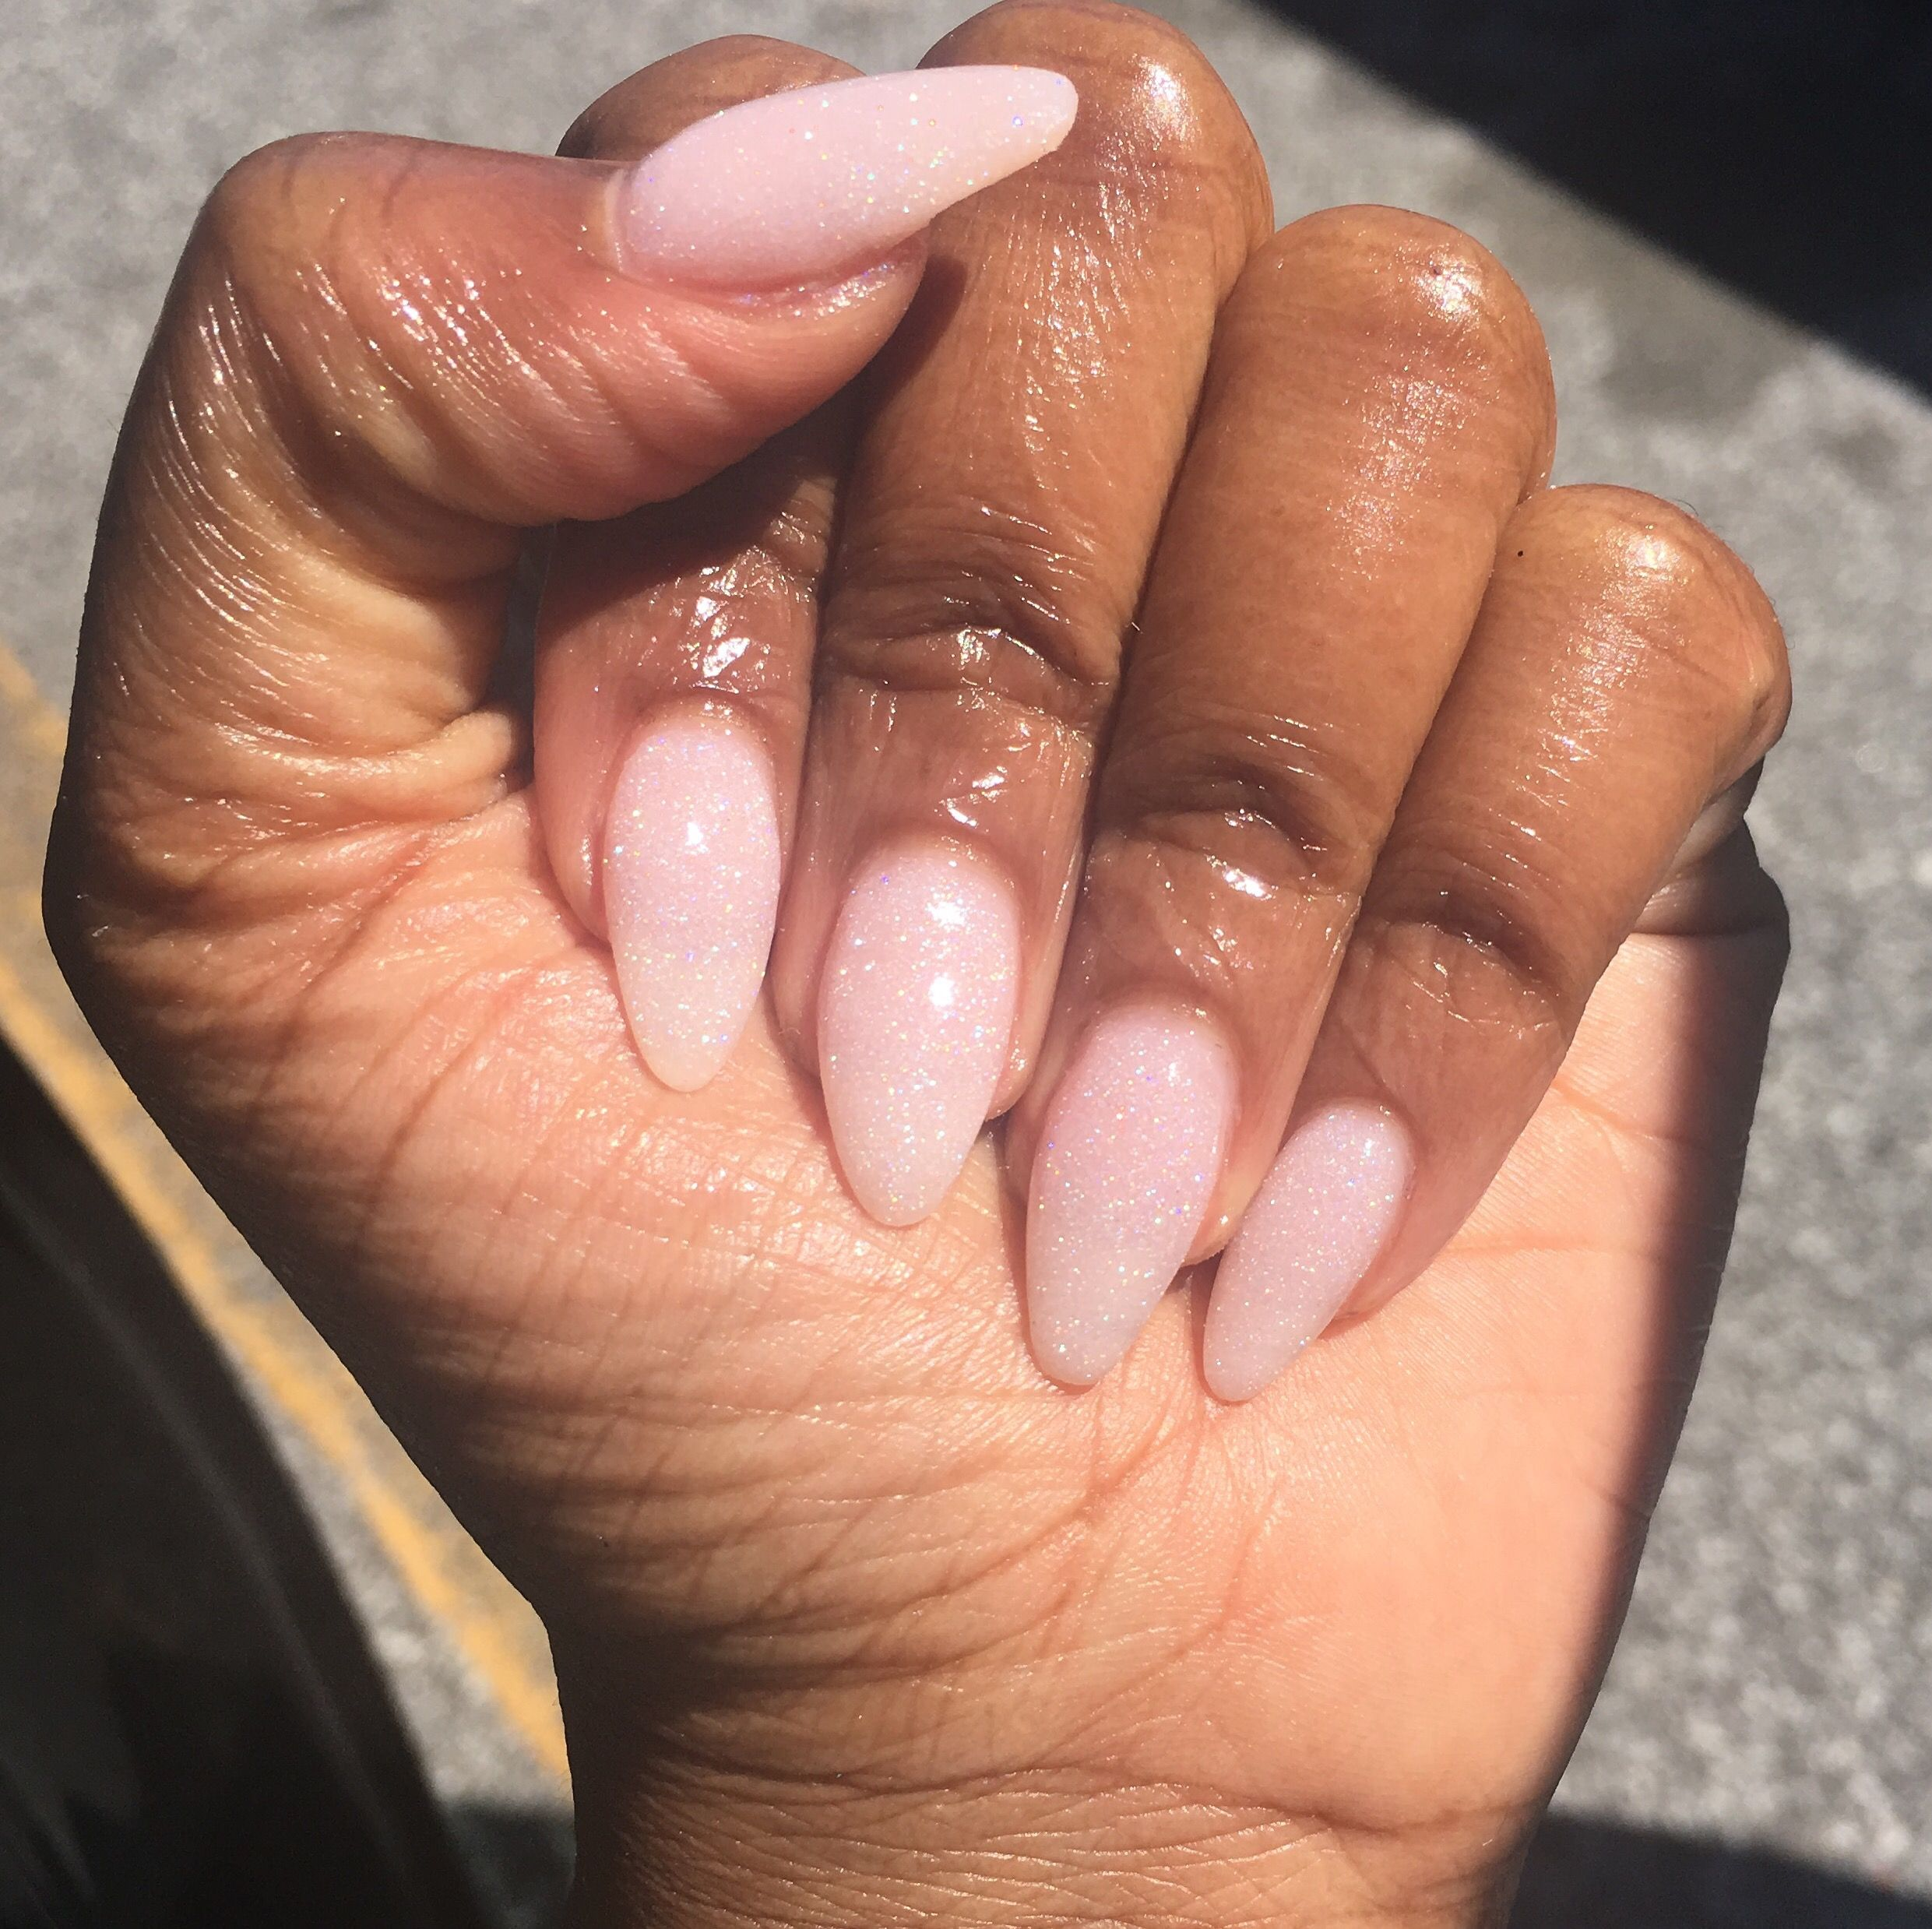 No Tips Just Natural Nail Length Between Almond And Stiletto Shape